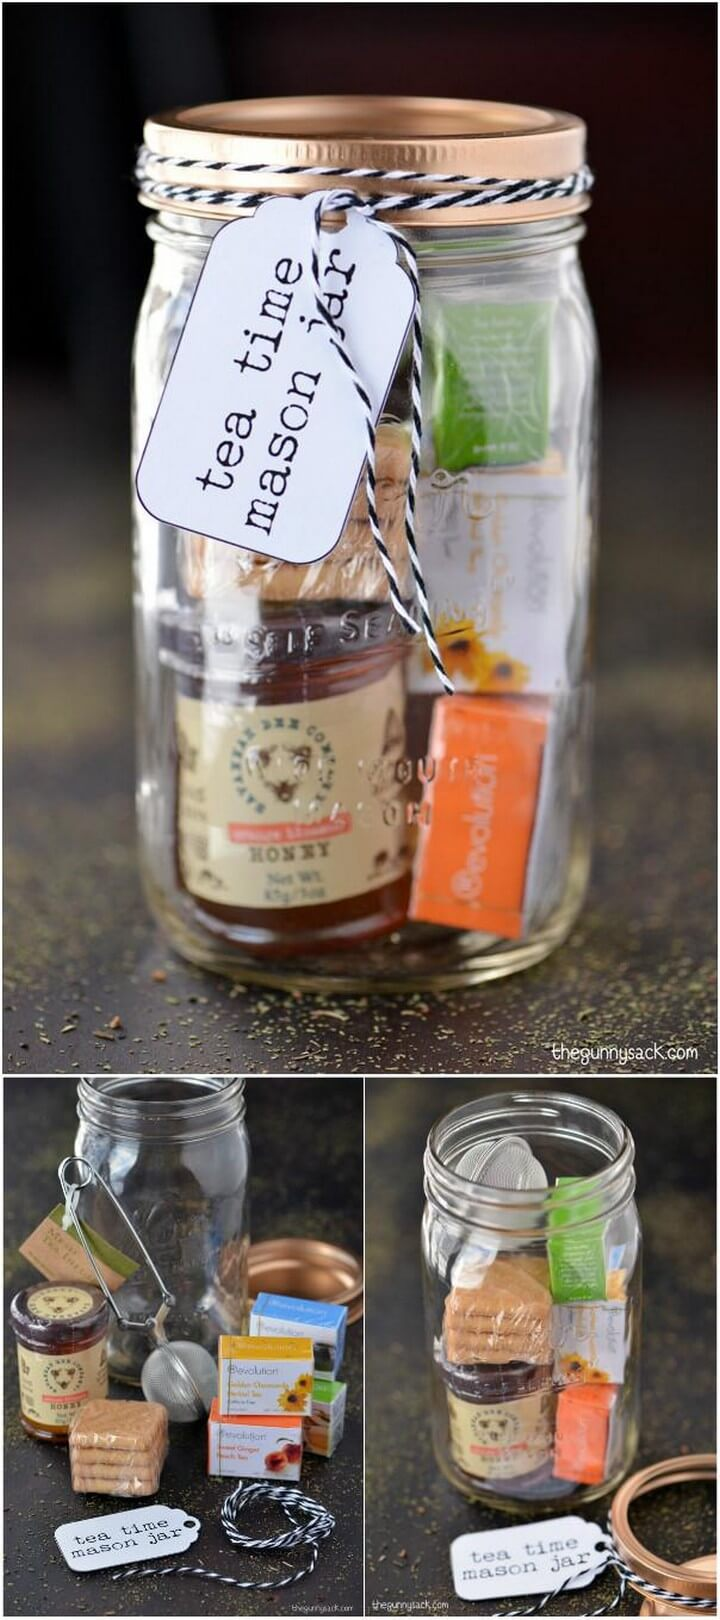 DIY Brilliant Tea Time Mason Jar Gift